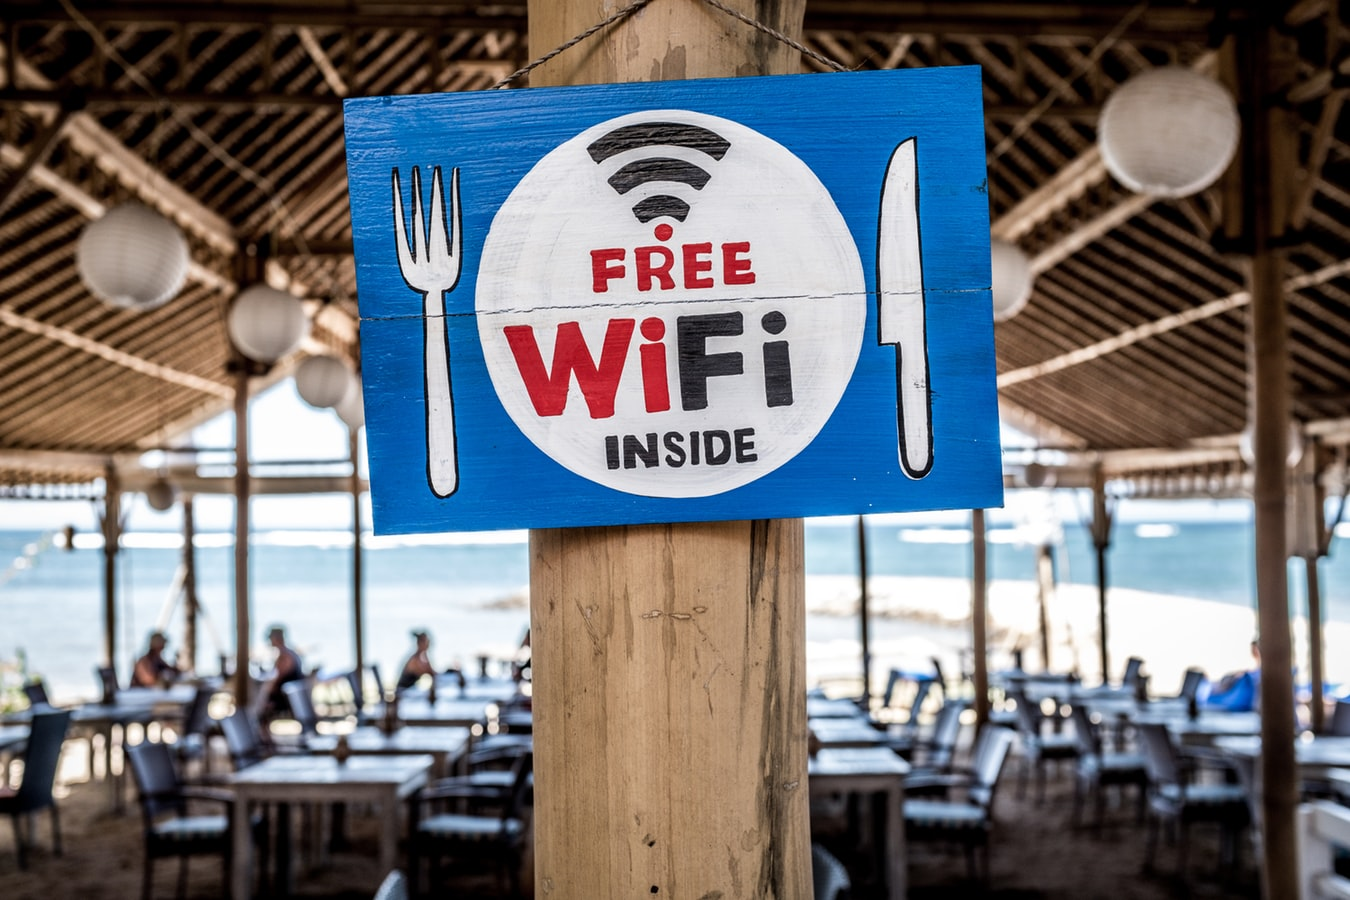 Reset your WiFi